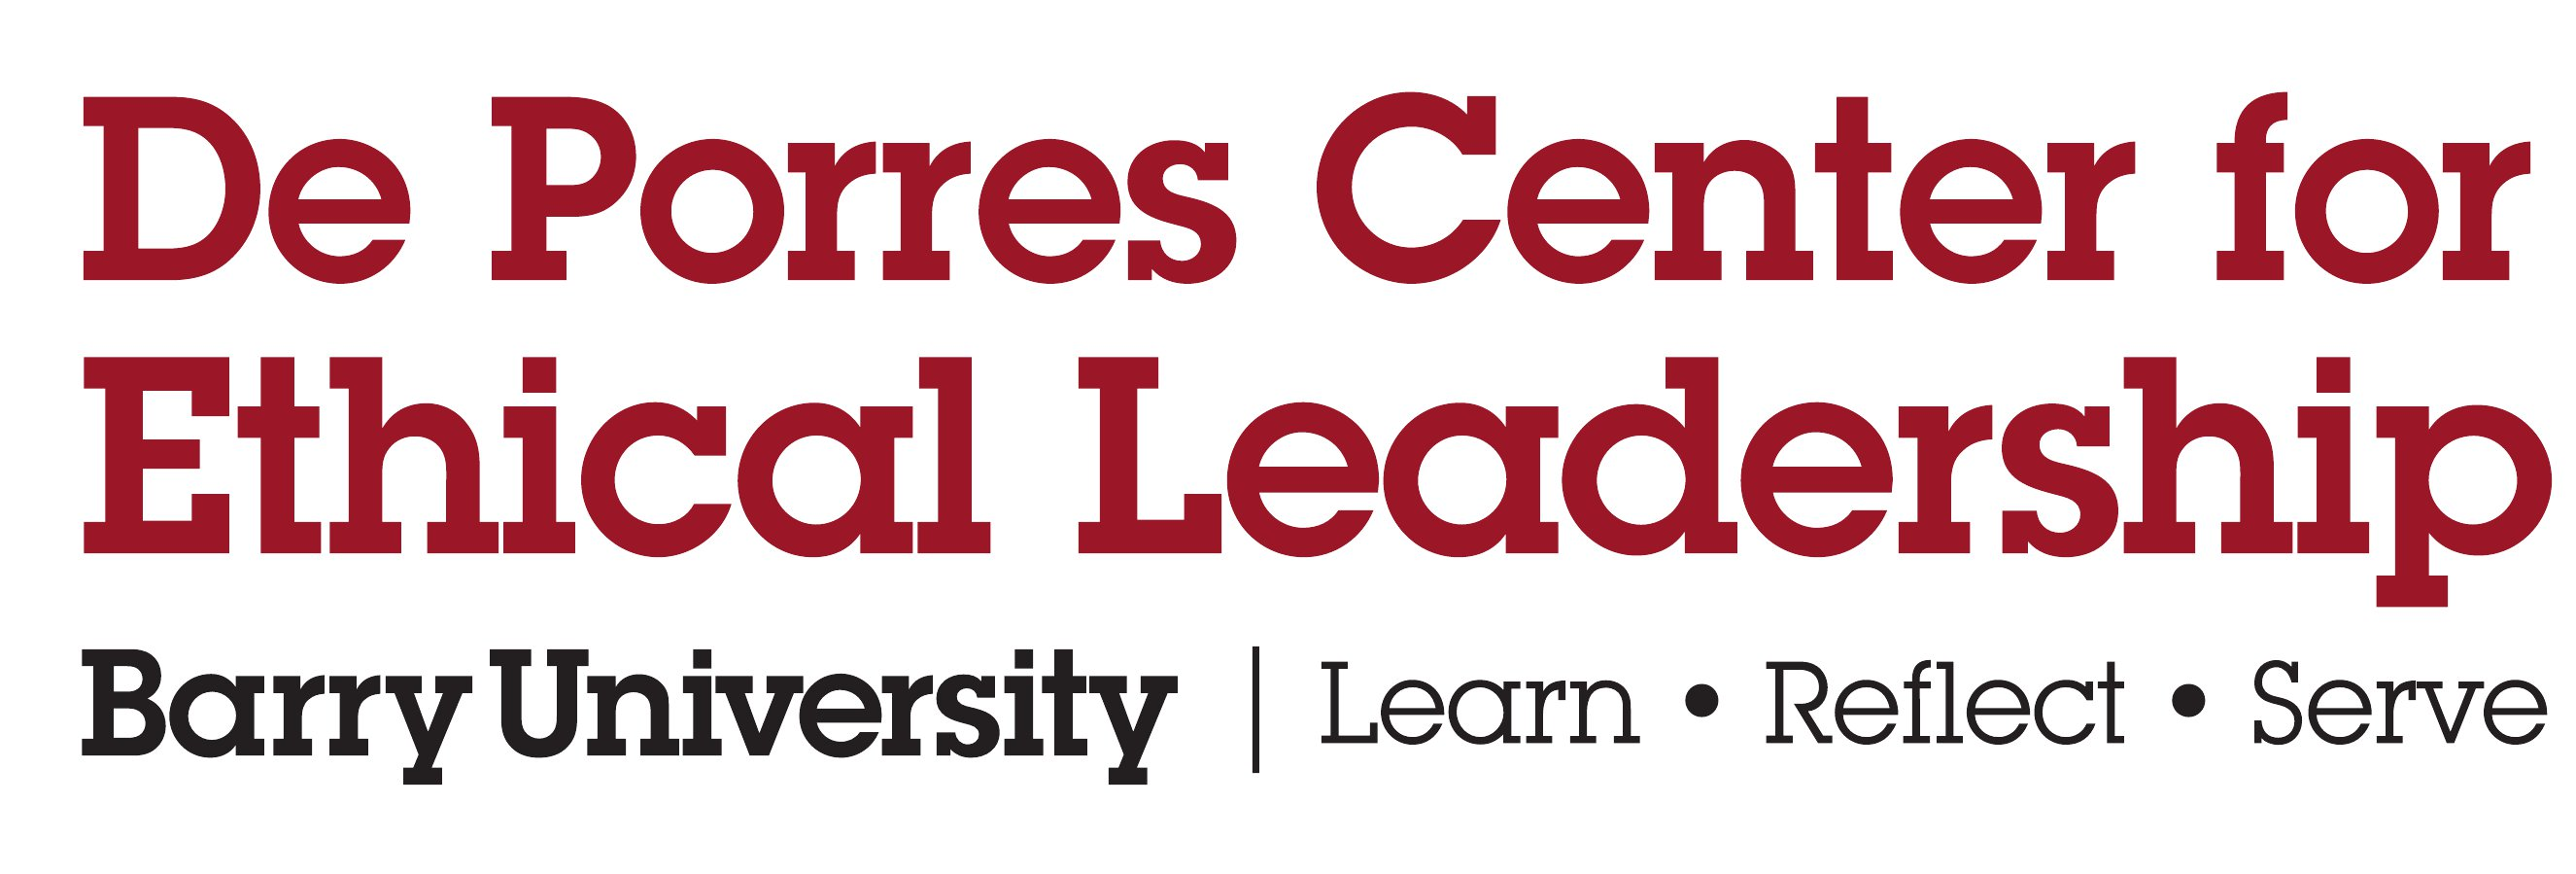 De Porres Center for Ethical Leadership